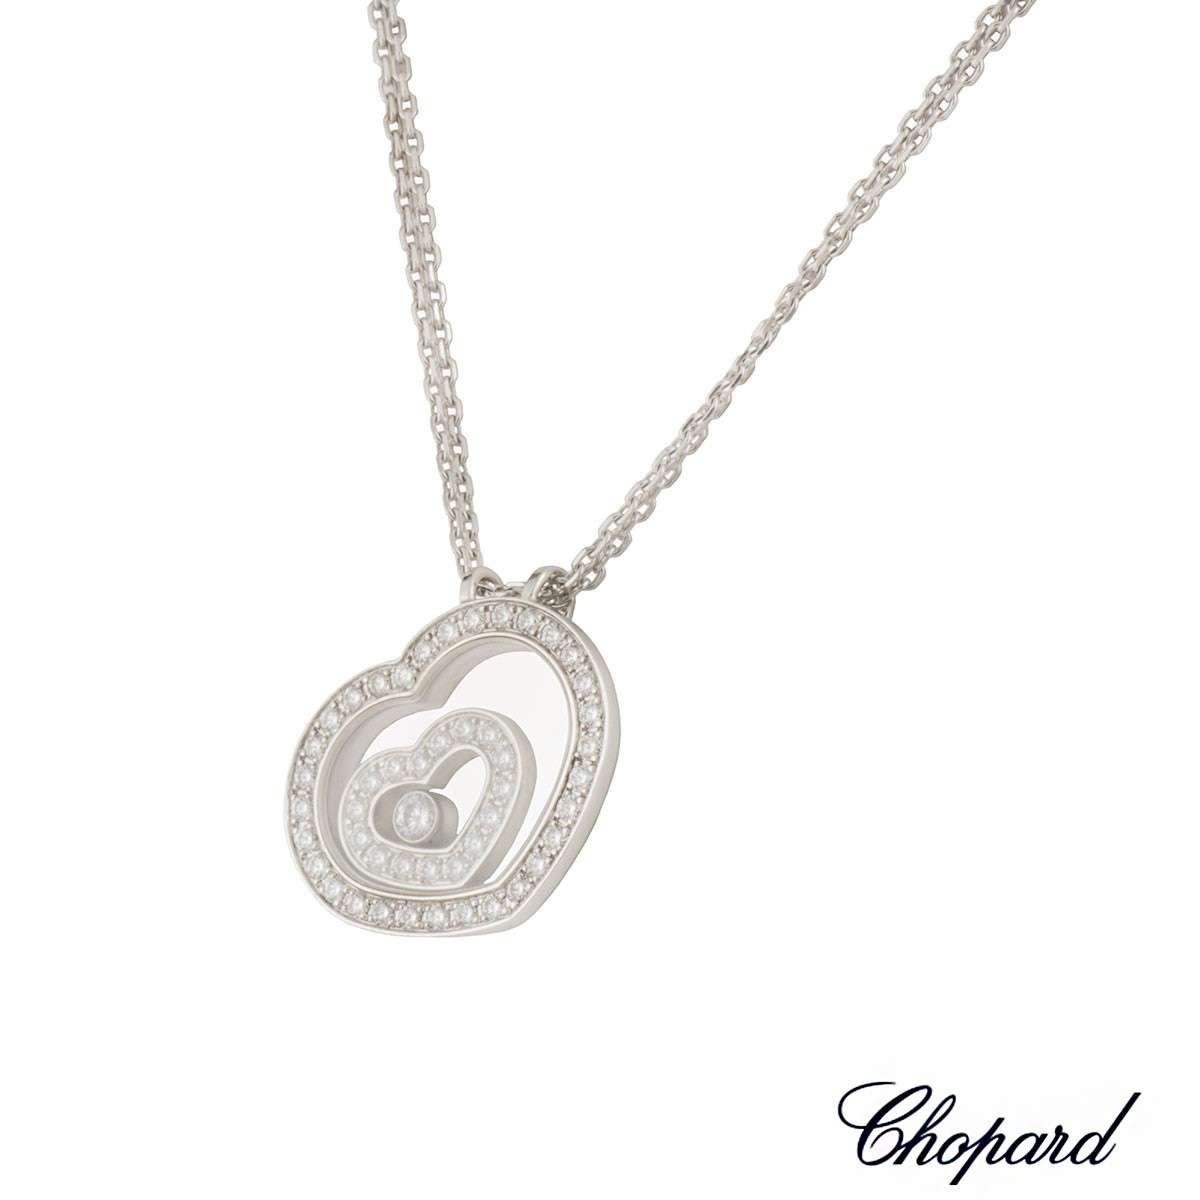 of spirit happy nbsp rich product chopard diamonds diamond pendant